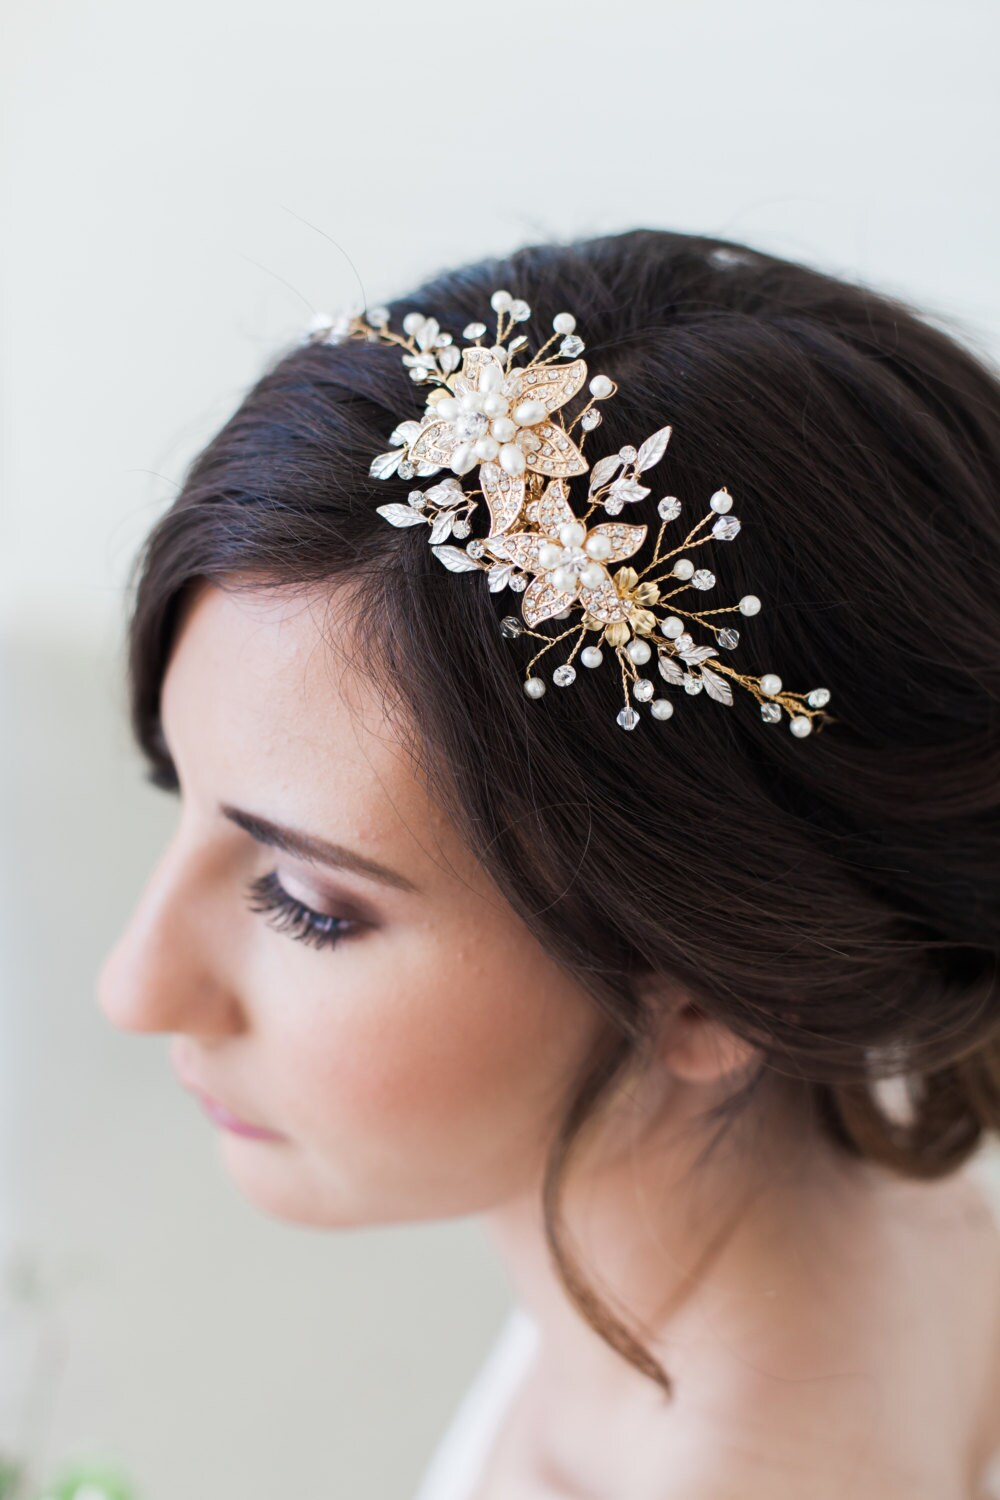 Rose gold wedding hair accessories -  Gold Wedding Hair Accessories Gallery Photo Gallery Photo Gallery Photo Gallery Photo Gallery Photo